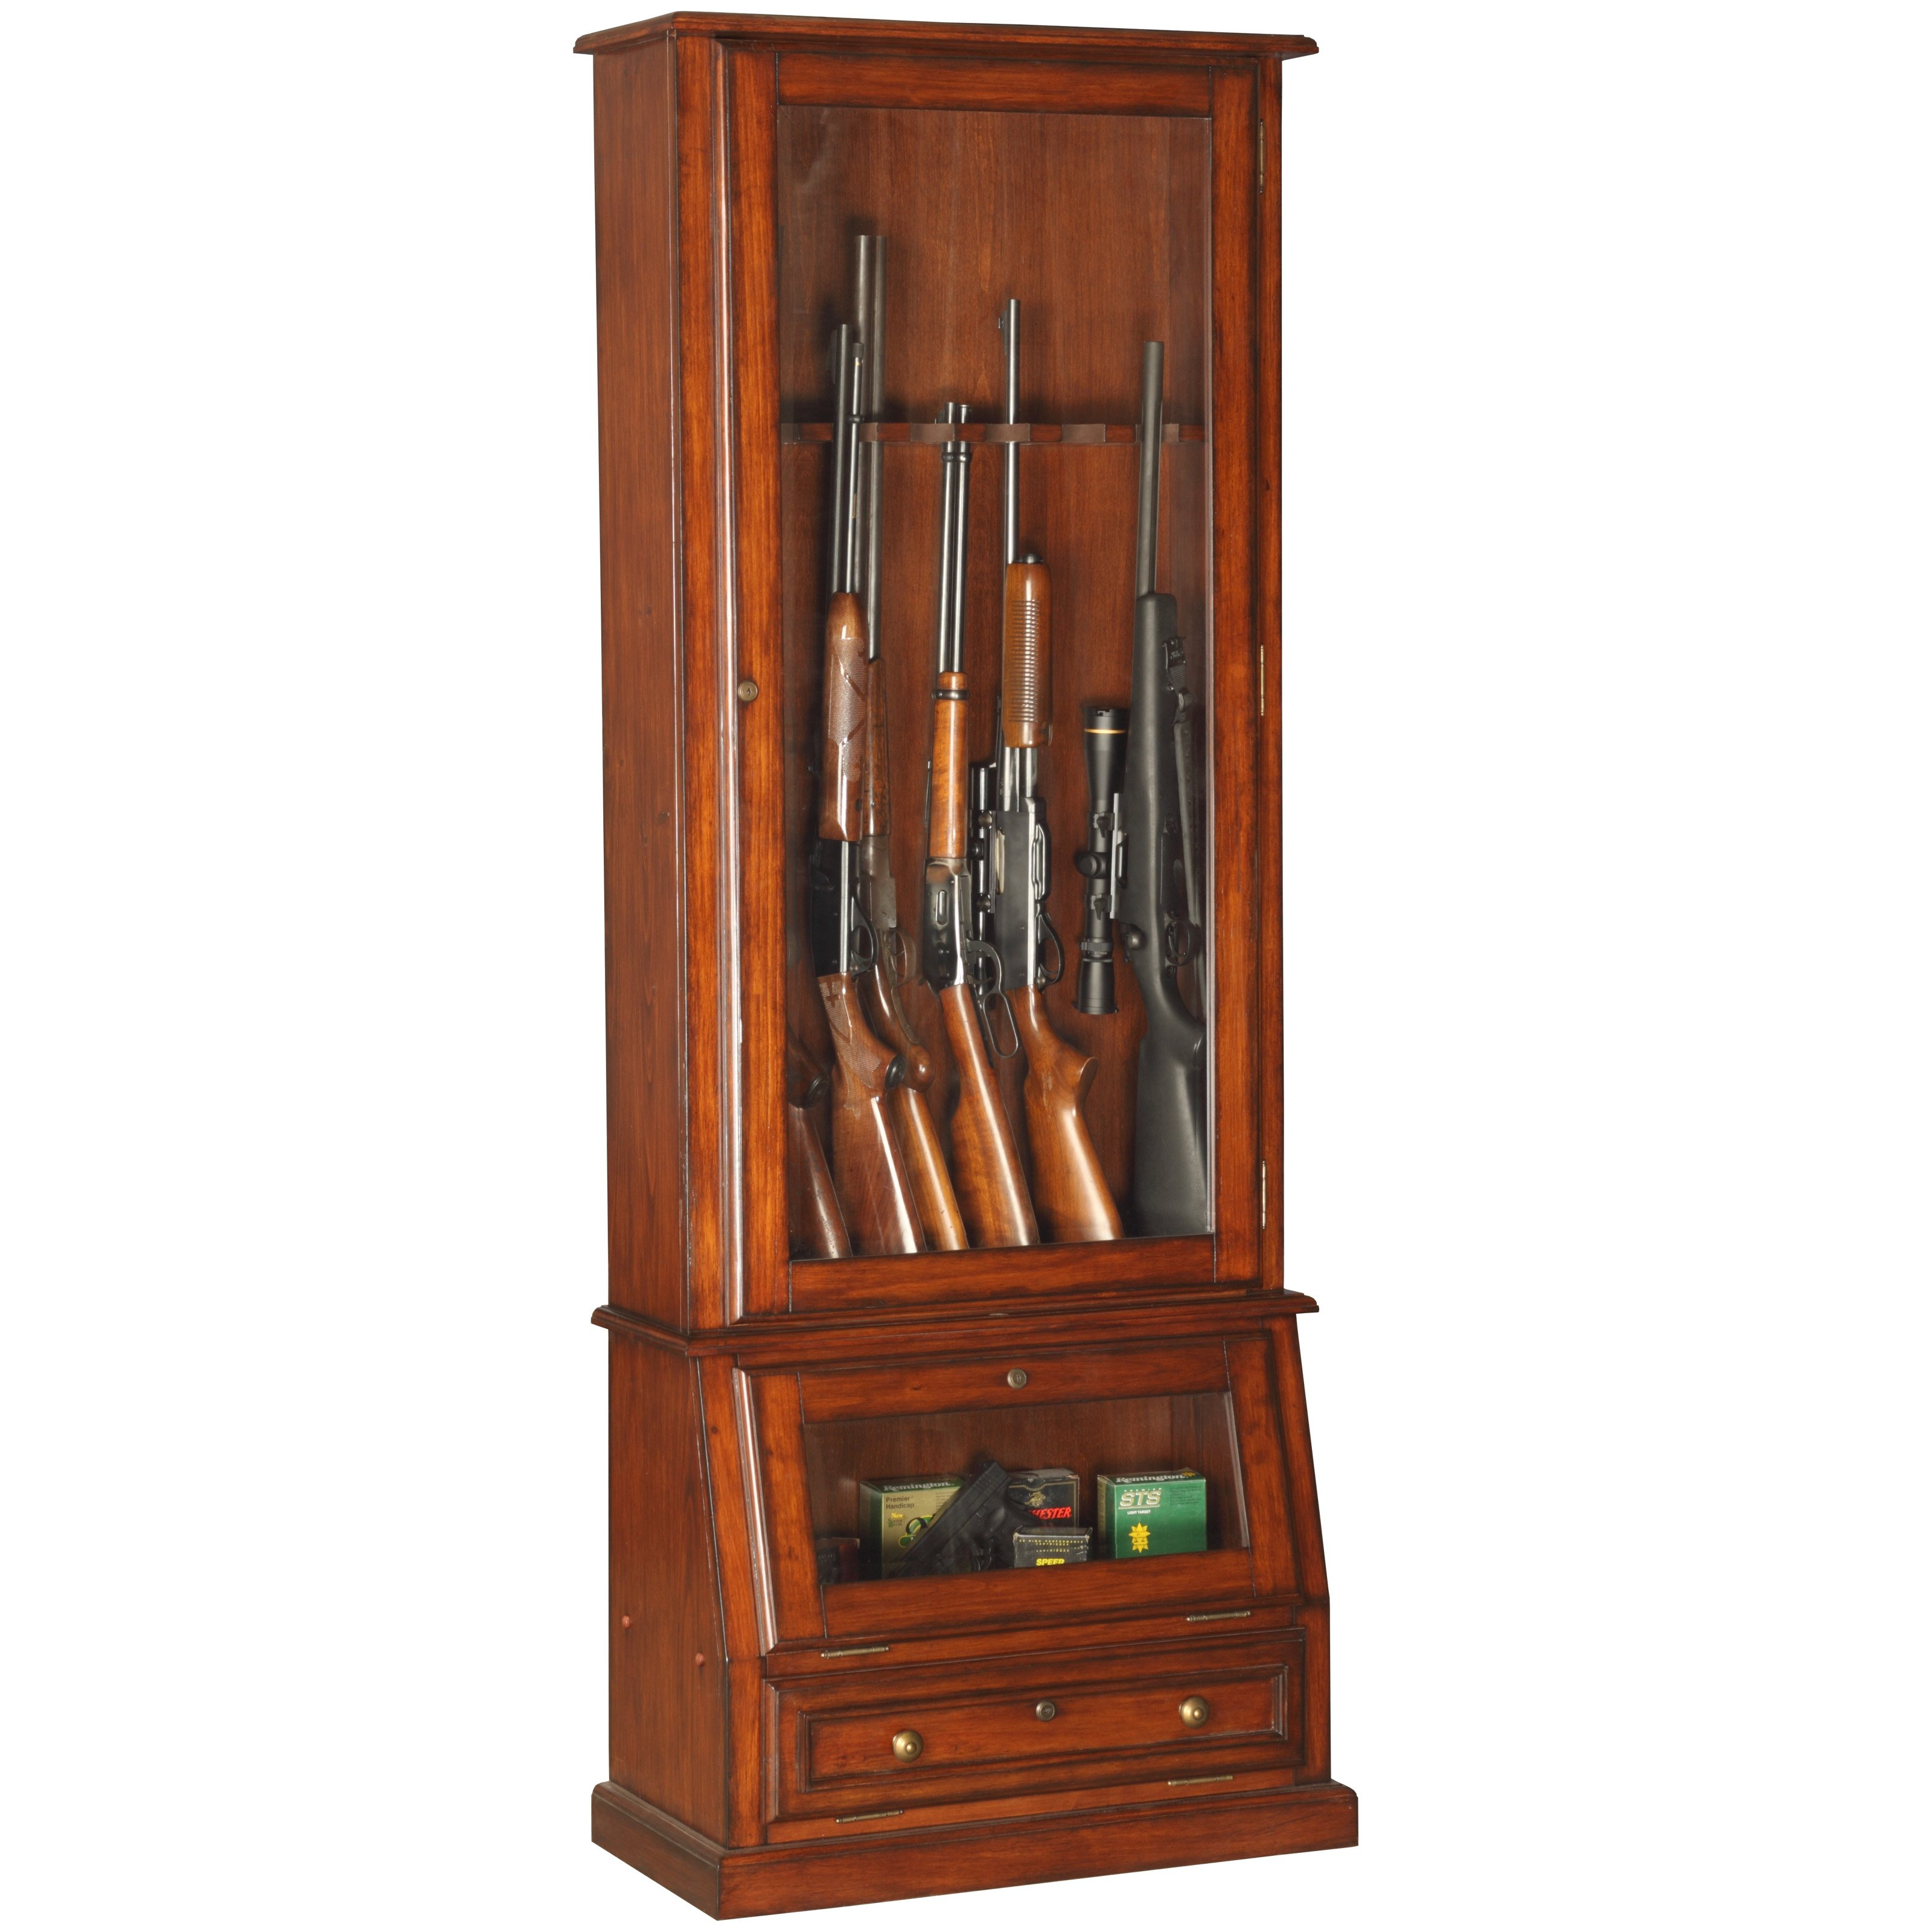 American Furniture Classics 898 Wood 12-Gun Cabinet with Slanted Base